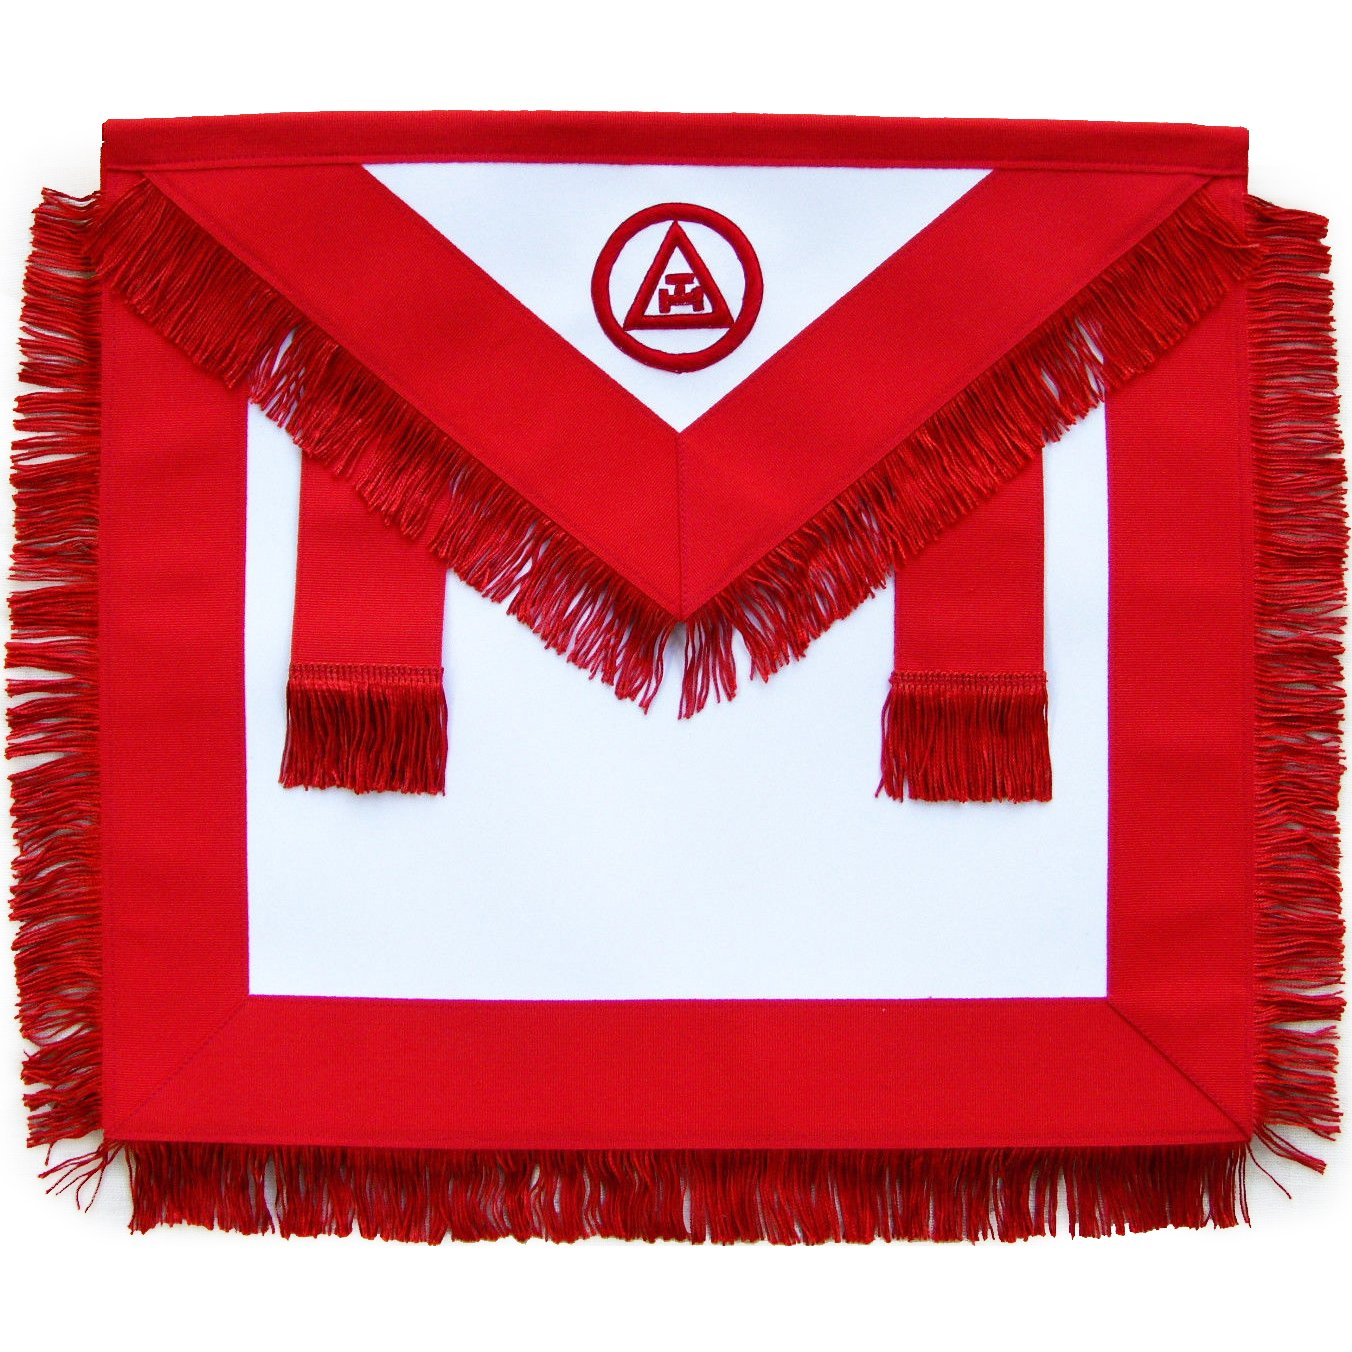 Masonic Royal Arch Member RAM Apron With Fringe